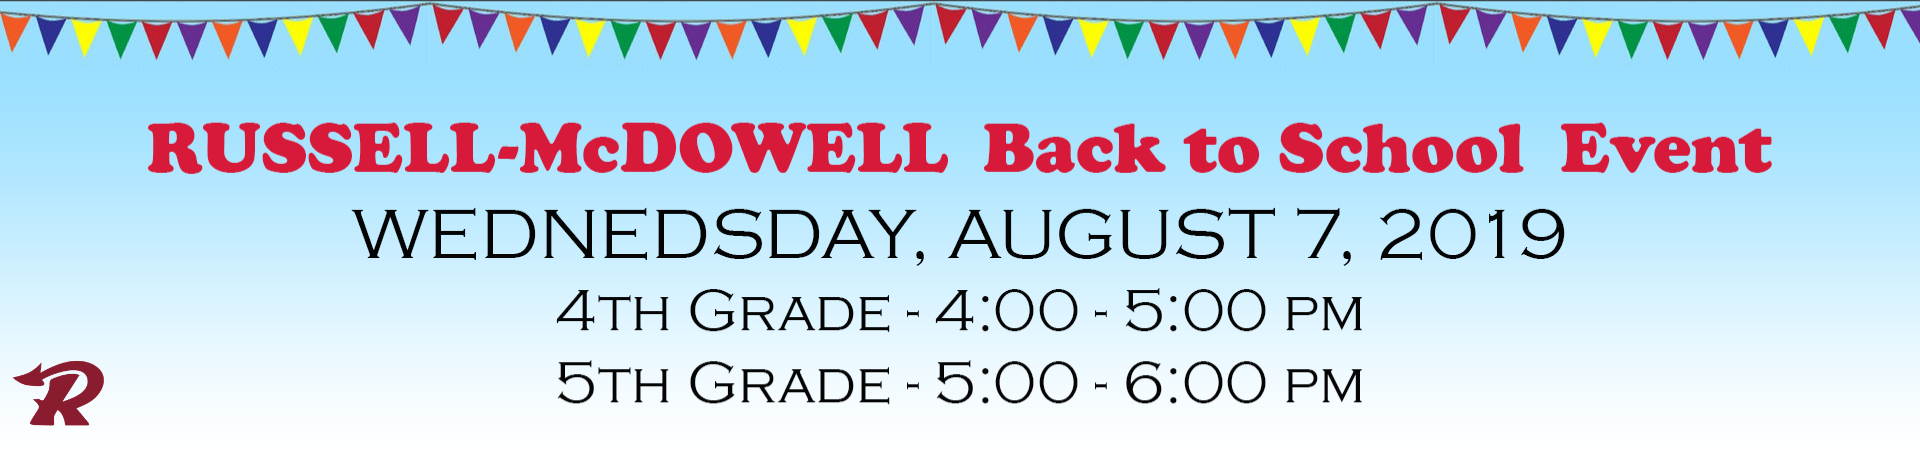 RMIS Back to School August 7, 2019